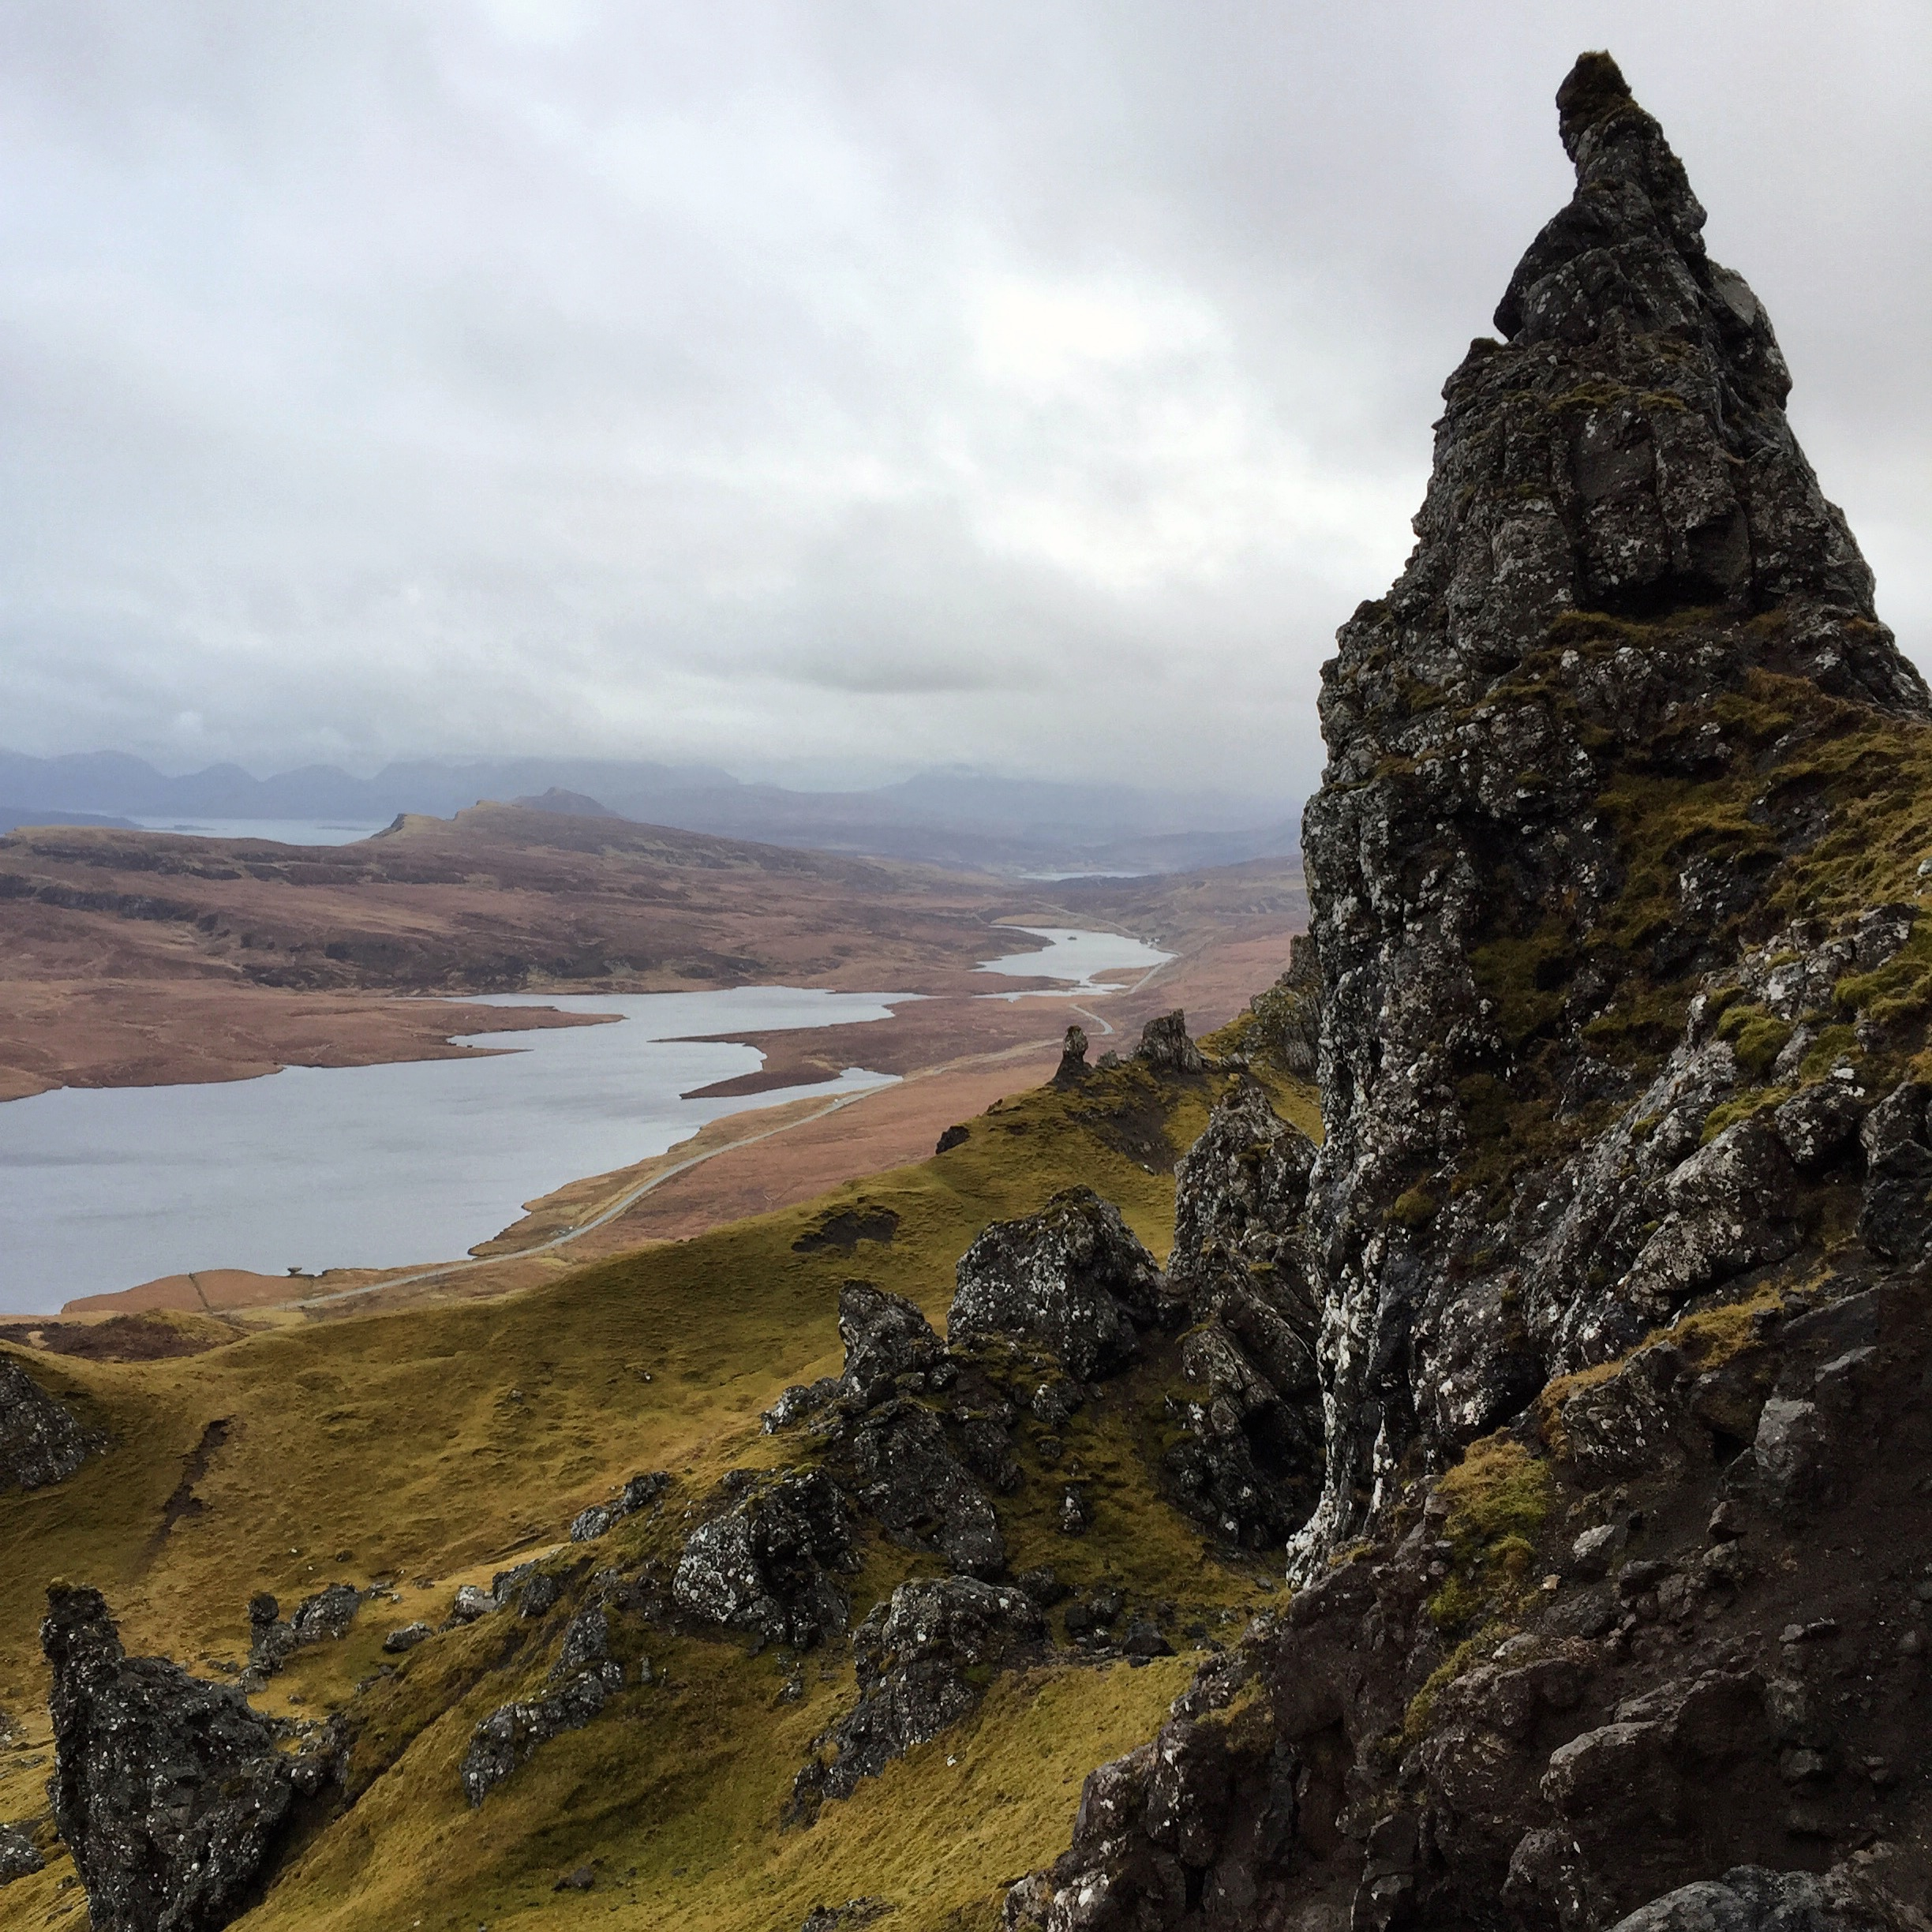 Isle of Skye, iPhone 6  Another example of adding foreground interest to give the viewer a sense of the vast scenery.